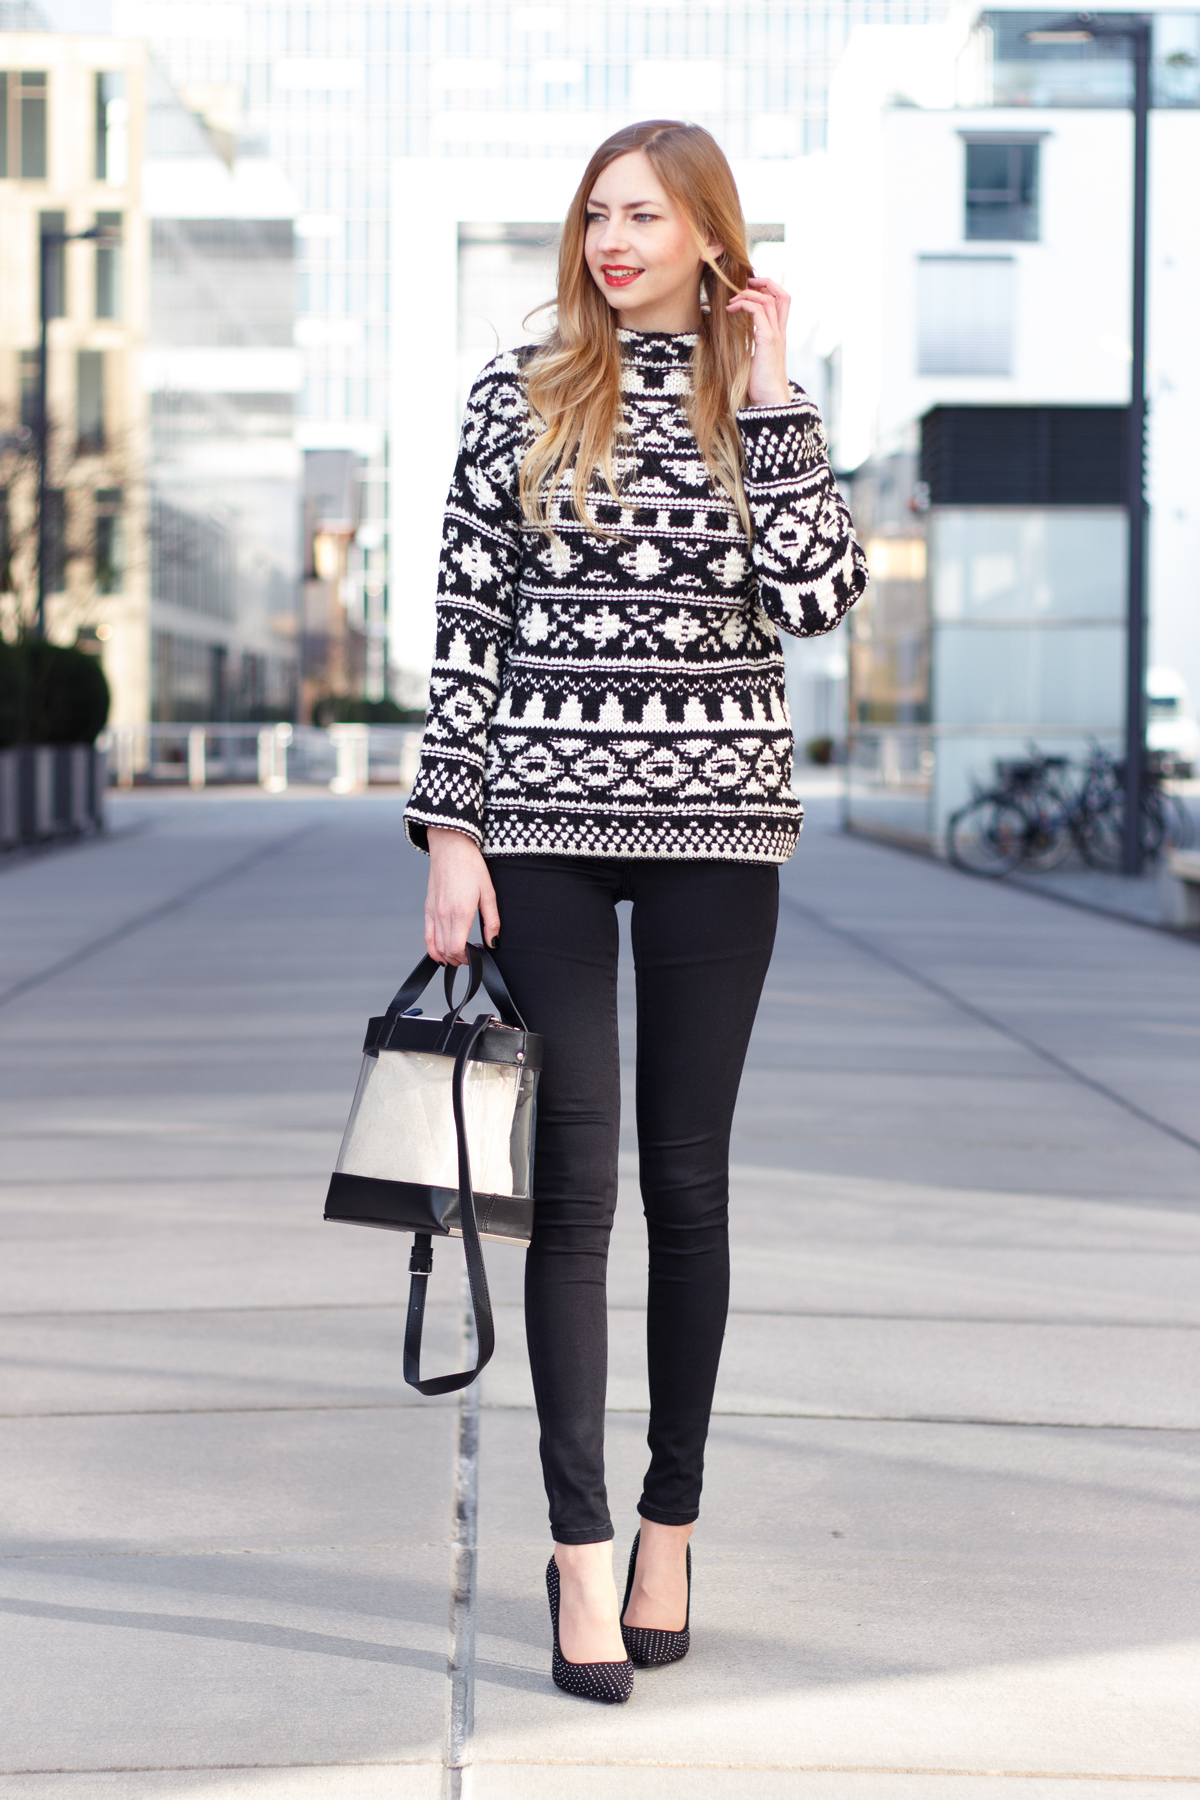 Black & White II How I met my outfit